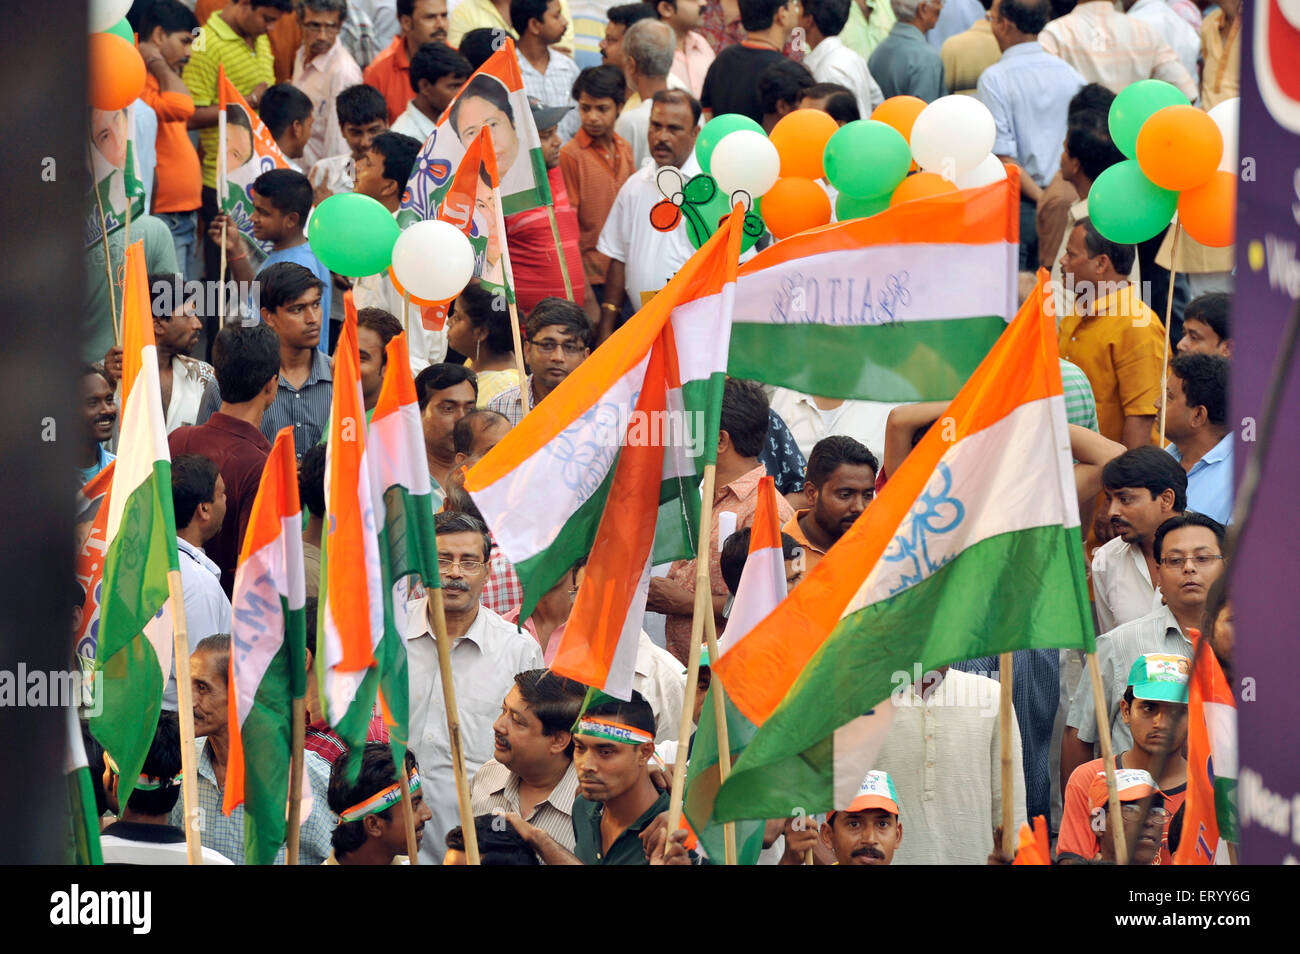 The Iconic image of Mamta Banerjee on the T M C banner in the Rally at Gariahat Road junction Kolkata India - Stock Image